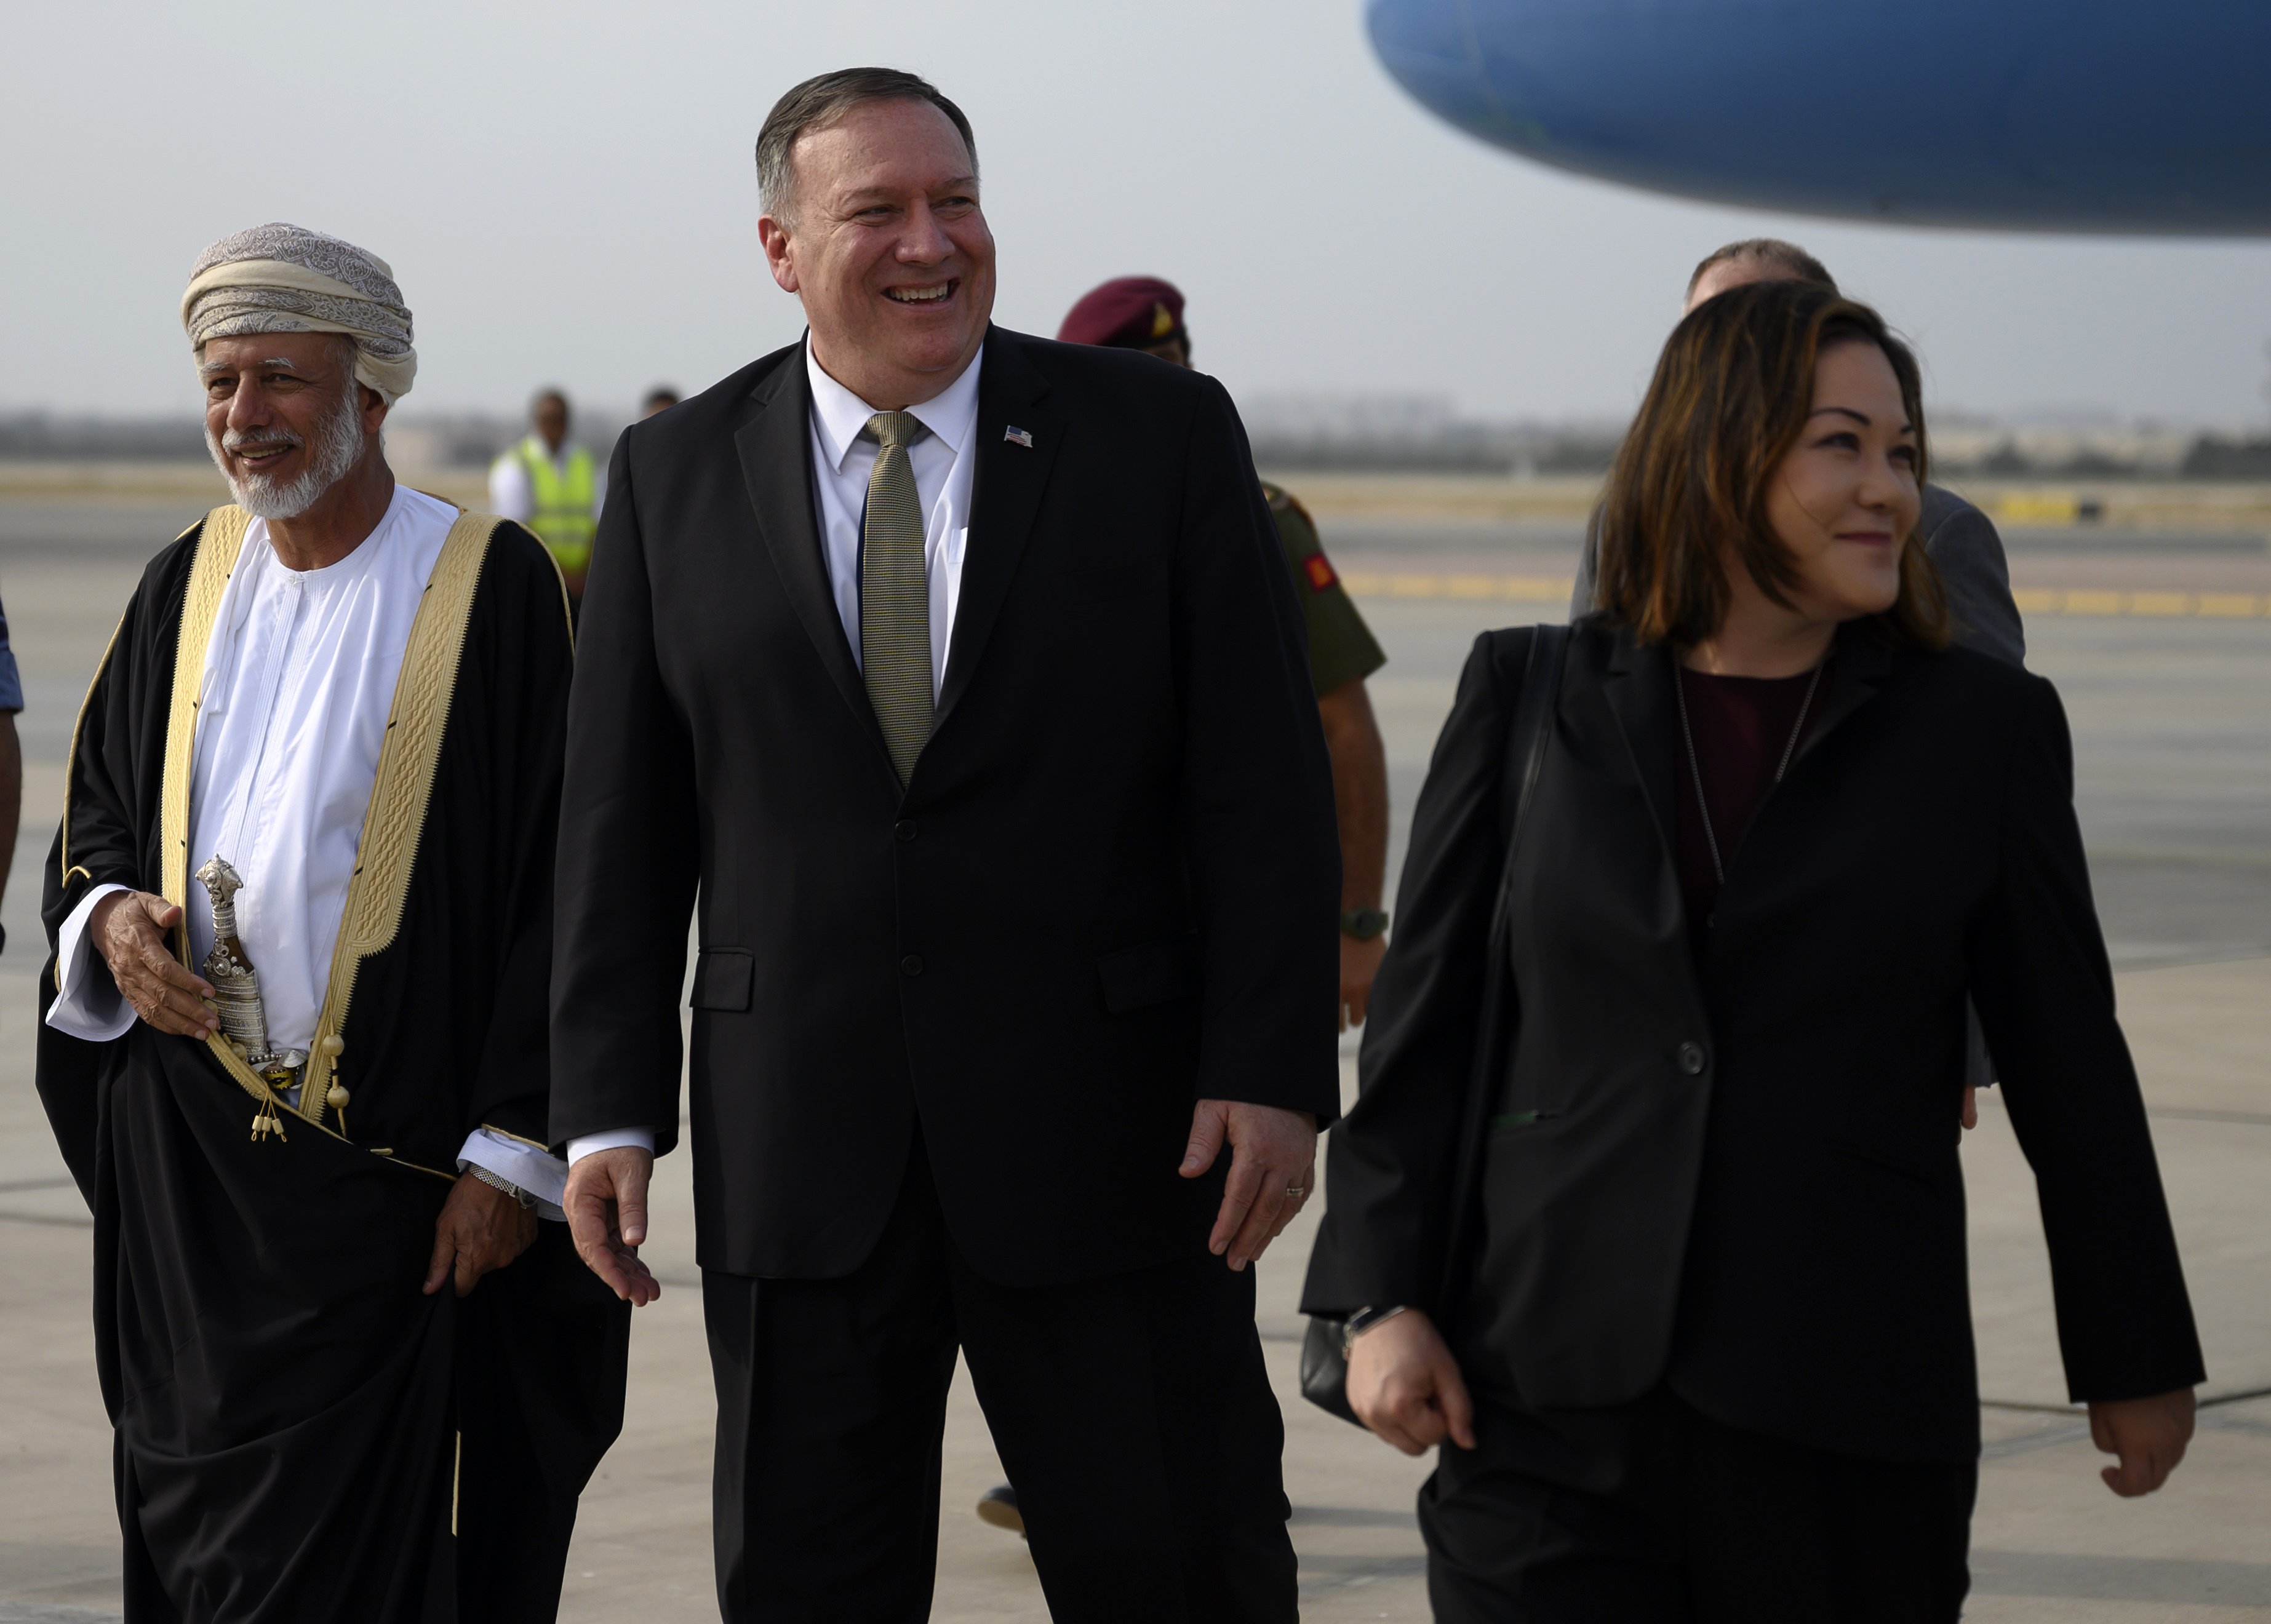 US Secretary of State Mike Pompeo (C) is greeted by Oman's Minister of Foreign Affairs Yusuf bin Alawi bin Abdullah (L) and US Ambassador to Oman Leslie Tsou (R) upon his arrival in the capital Muscat on February 21, 2020. (ANDREW CABALLERO-REYNOLDS/AFP via Getty Images)